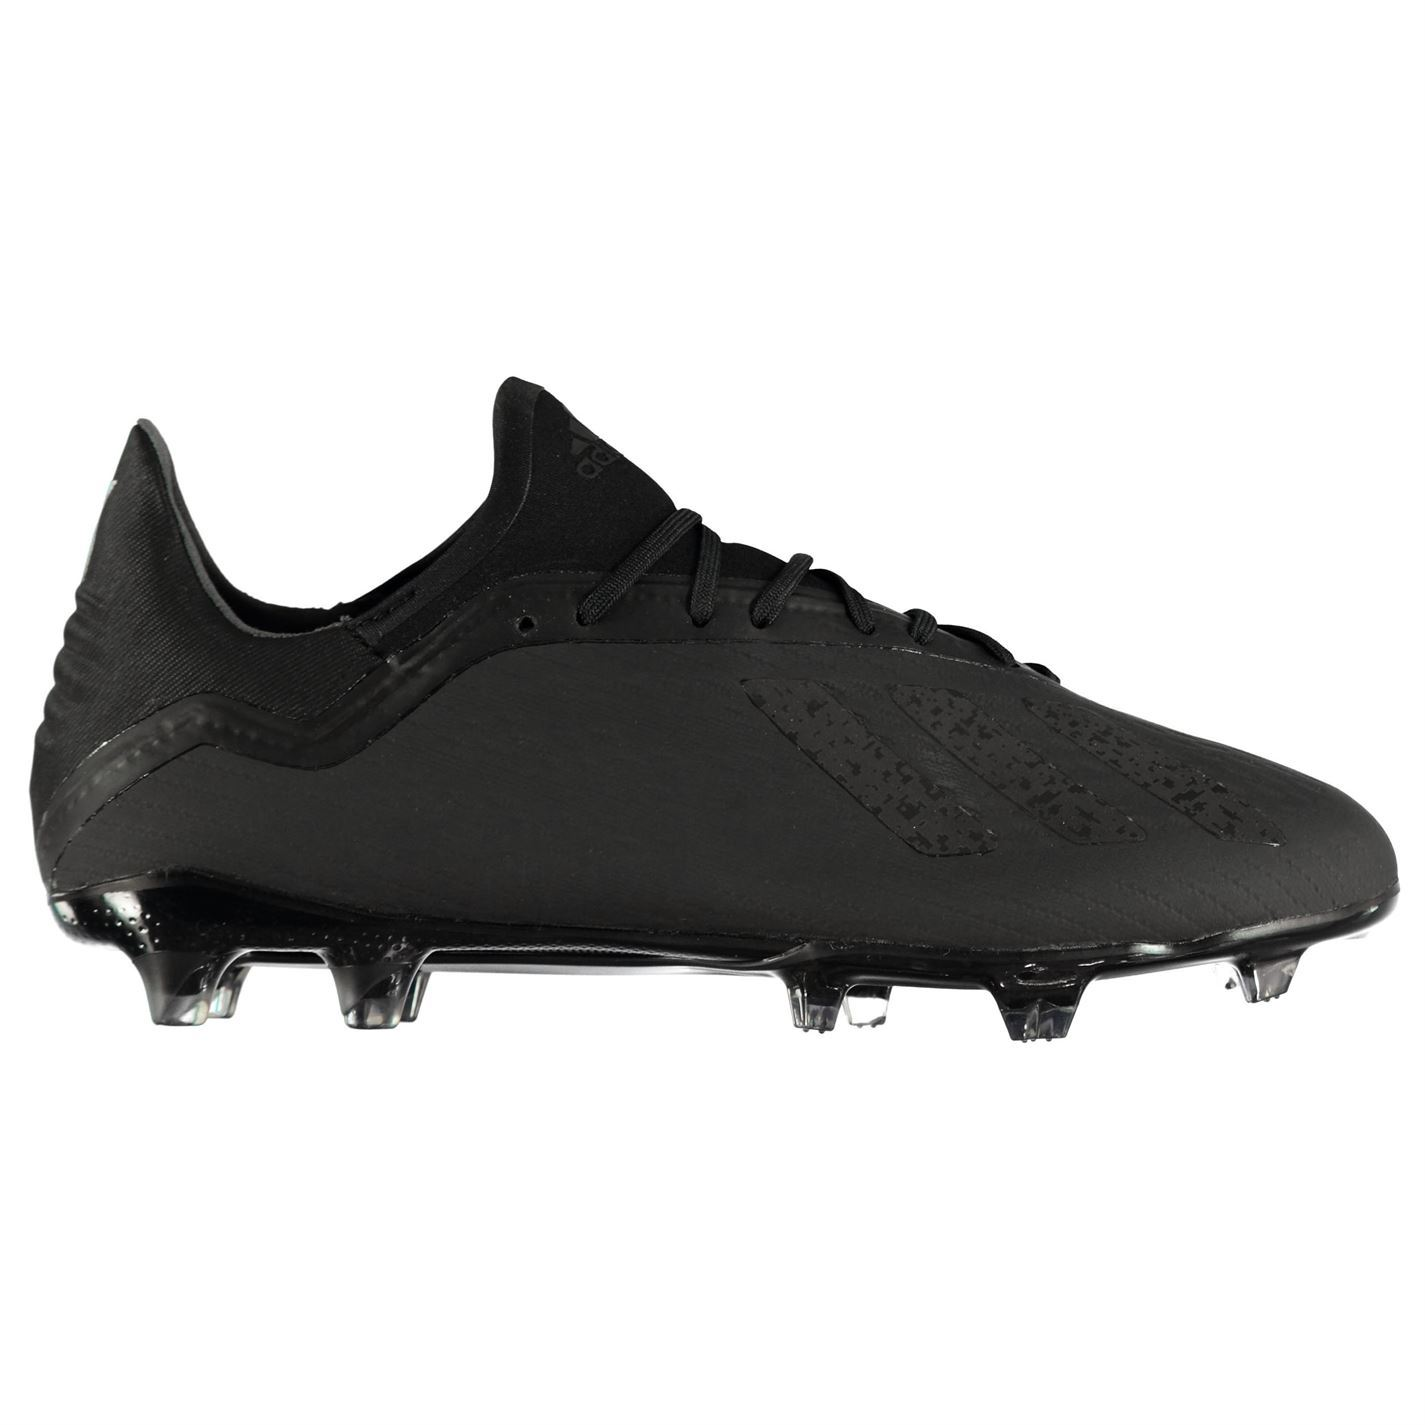 7d439d9fa14 ... adidas X 18.2 FG Firm Ground Football Boots Mens Black Soccer Shoes  Cleats ...